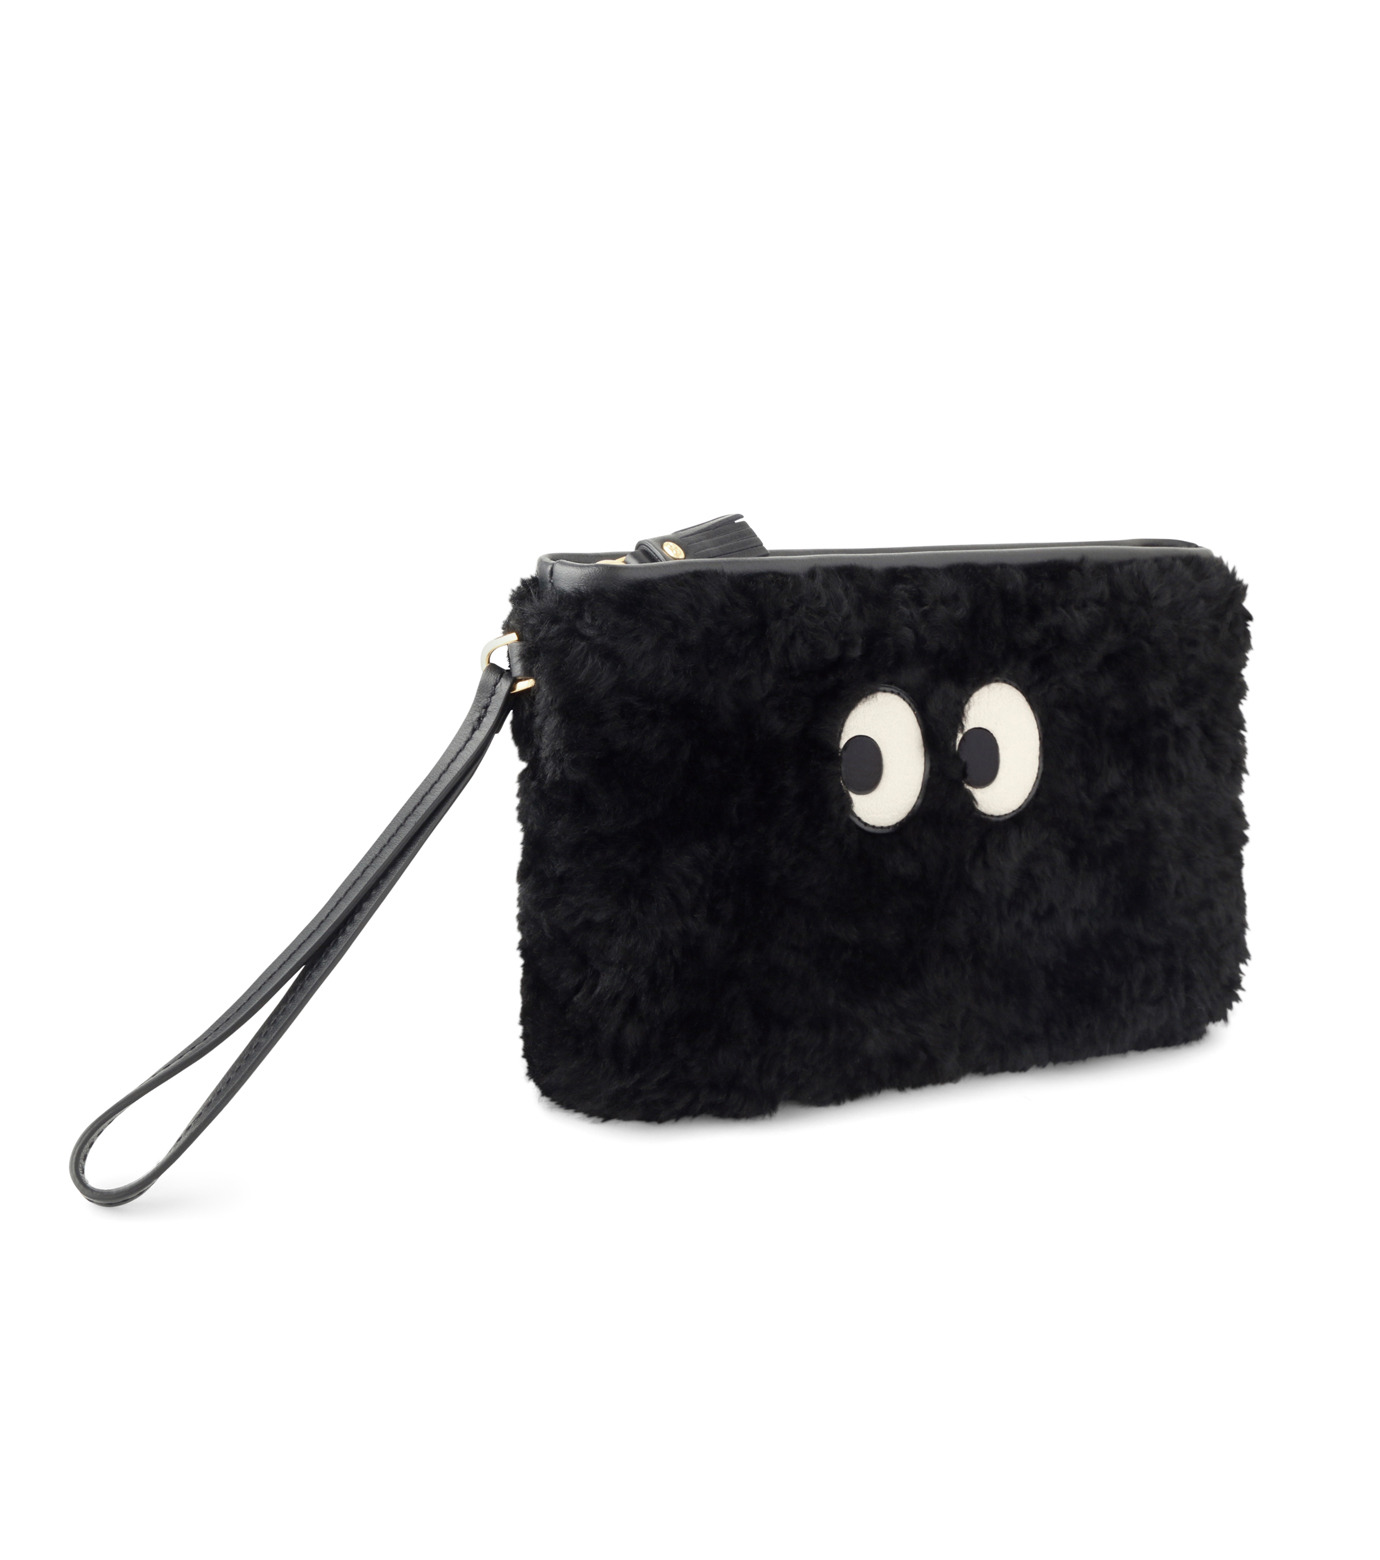 Anya Hindmarch(アニヤハインドマーチ)のZip Top Pouch Ghost Shearling-BLACK-933841-13 拡大詳細画像2